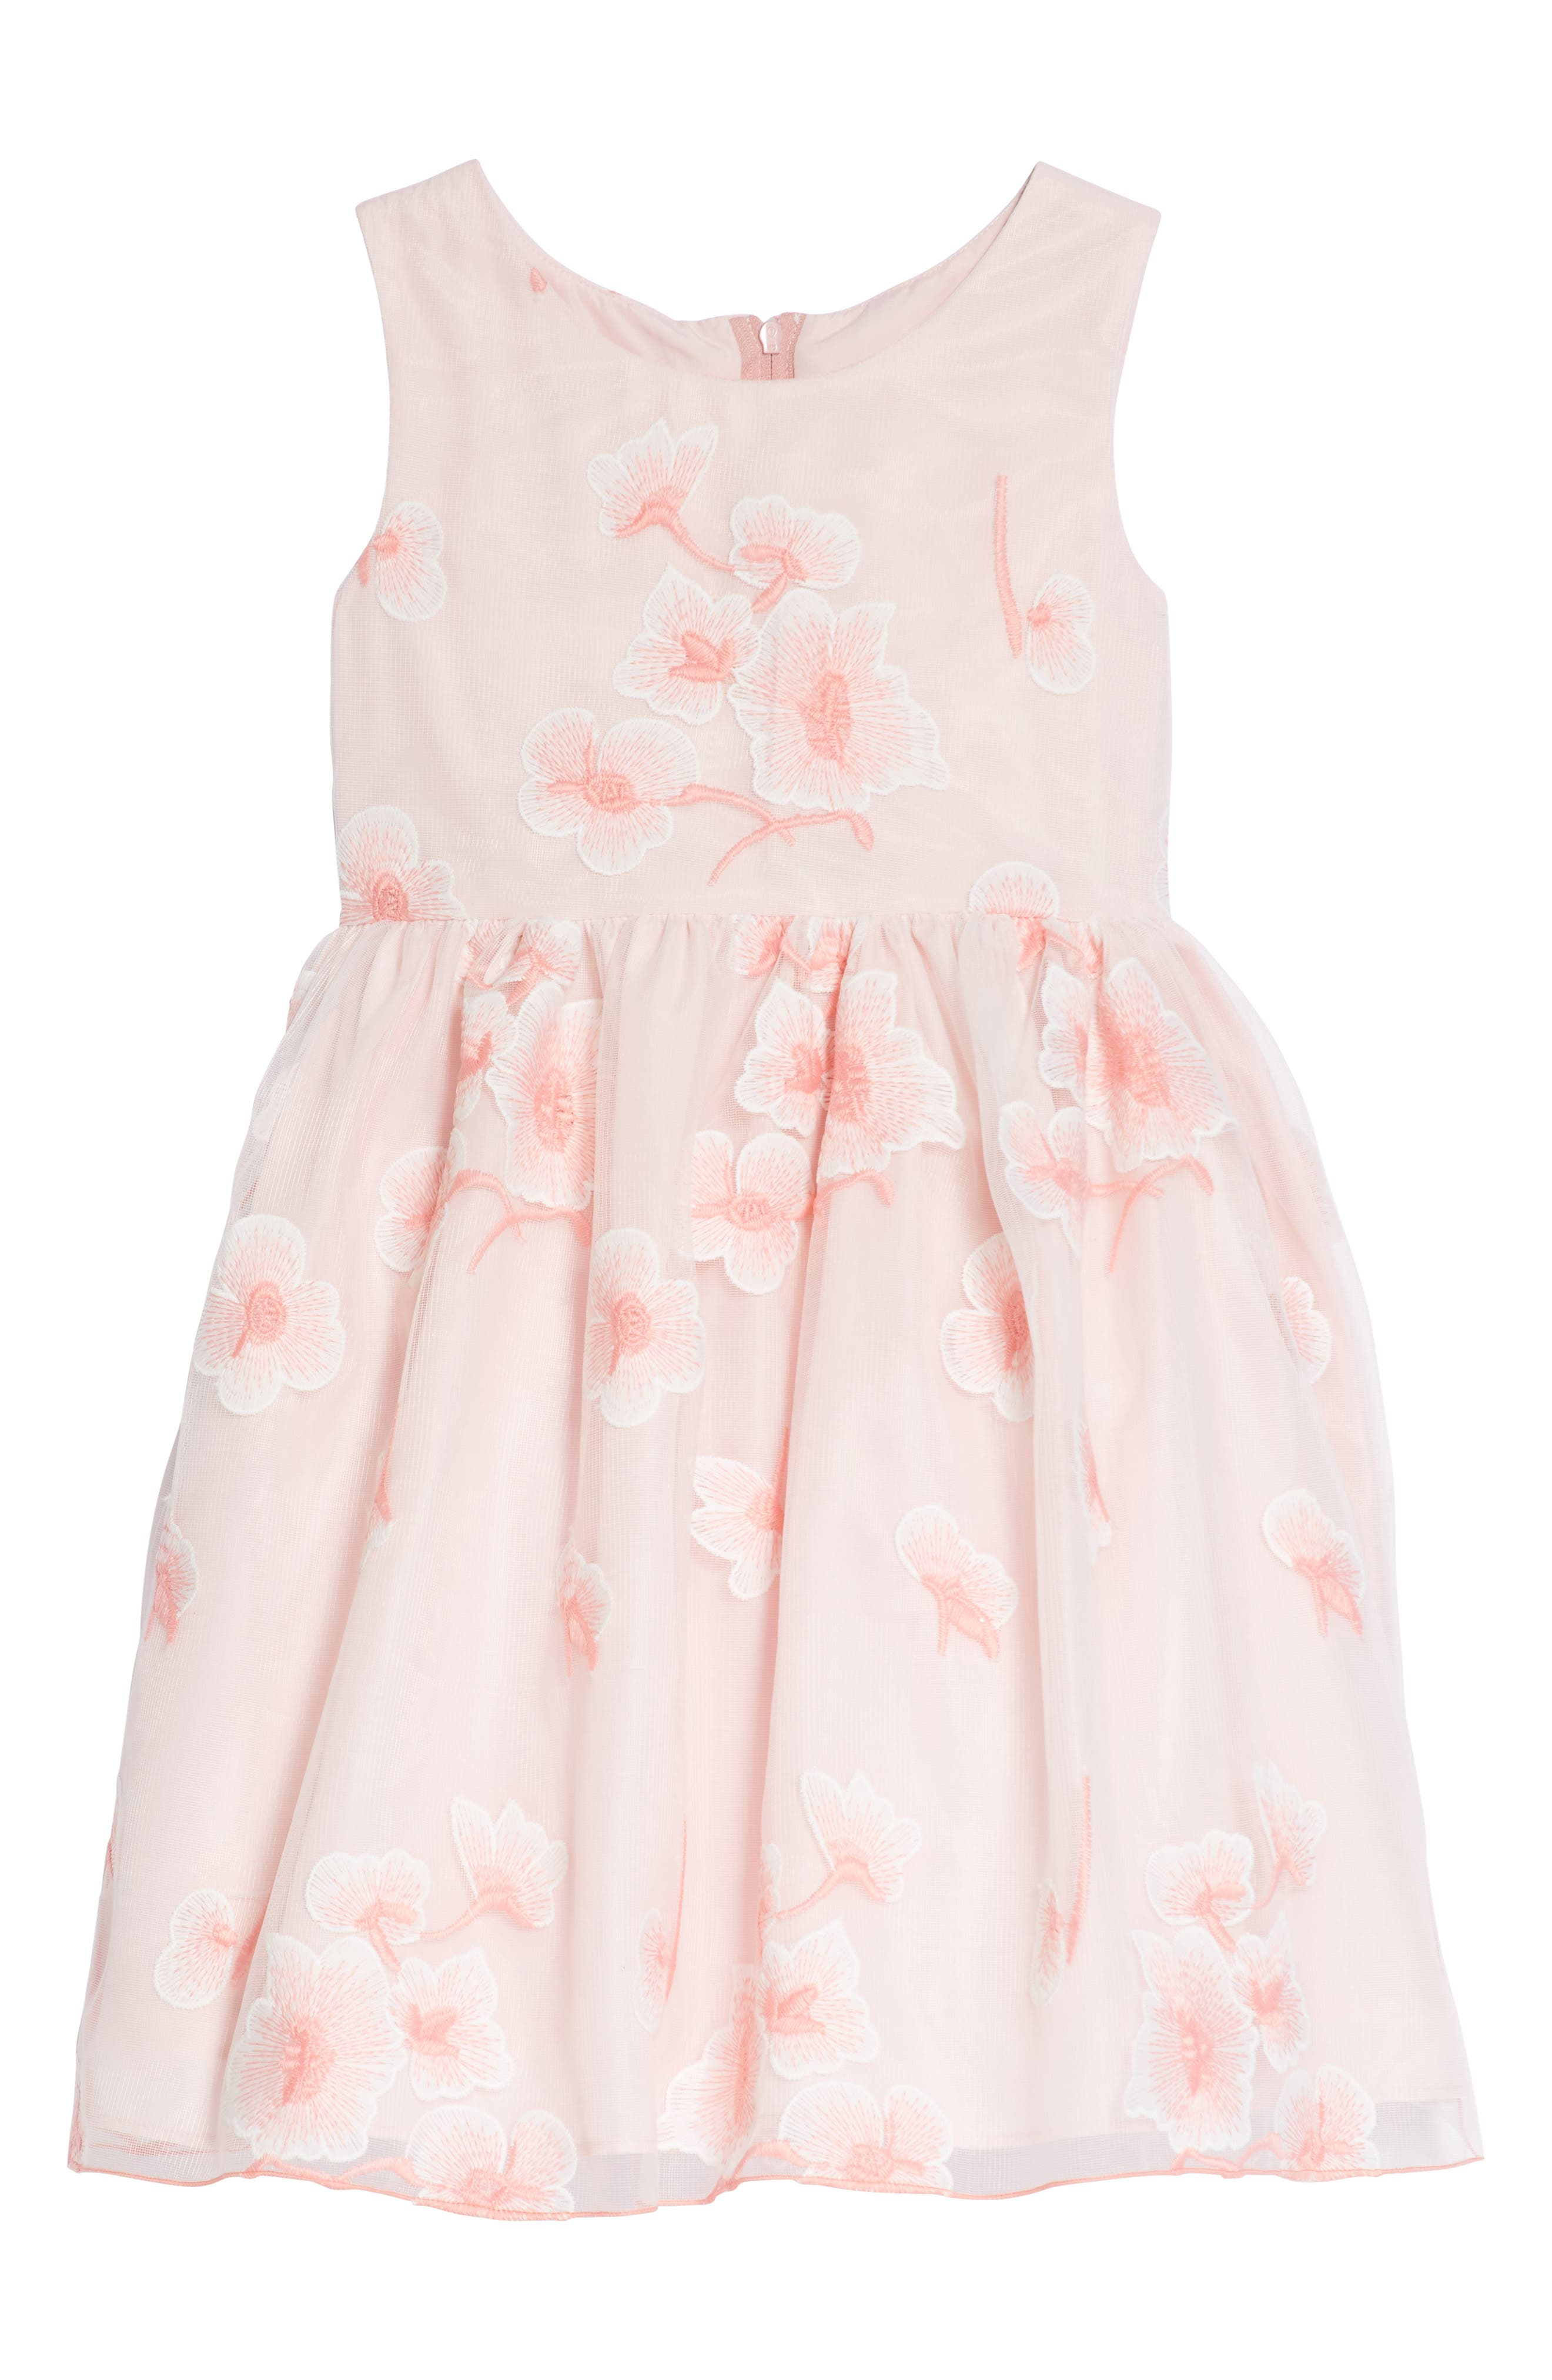 Floral Embroidered Dress,                             Main thumbnail 1, color,                             Pink